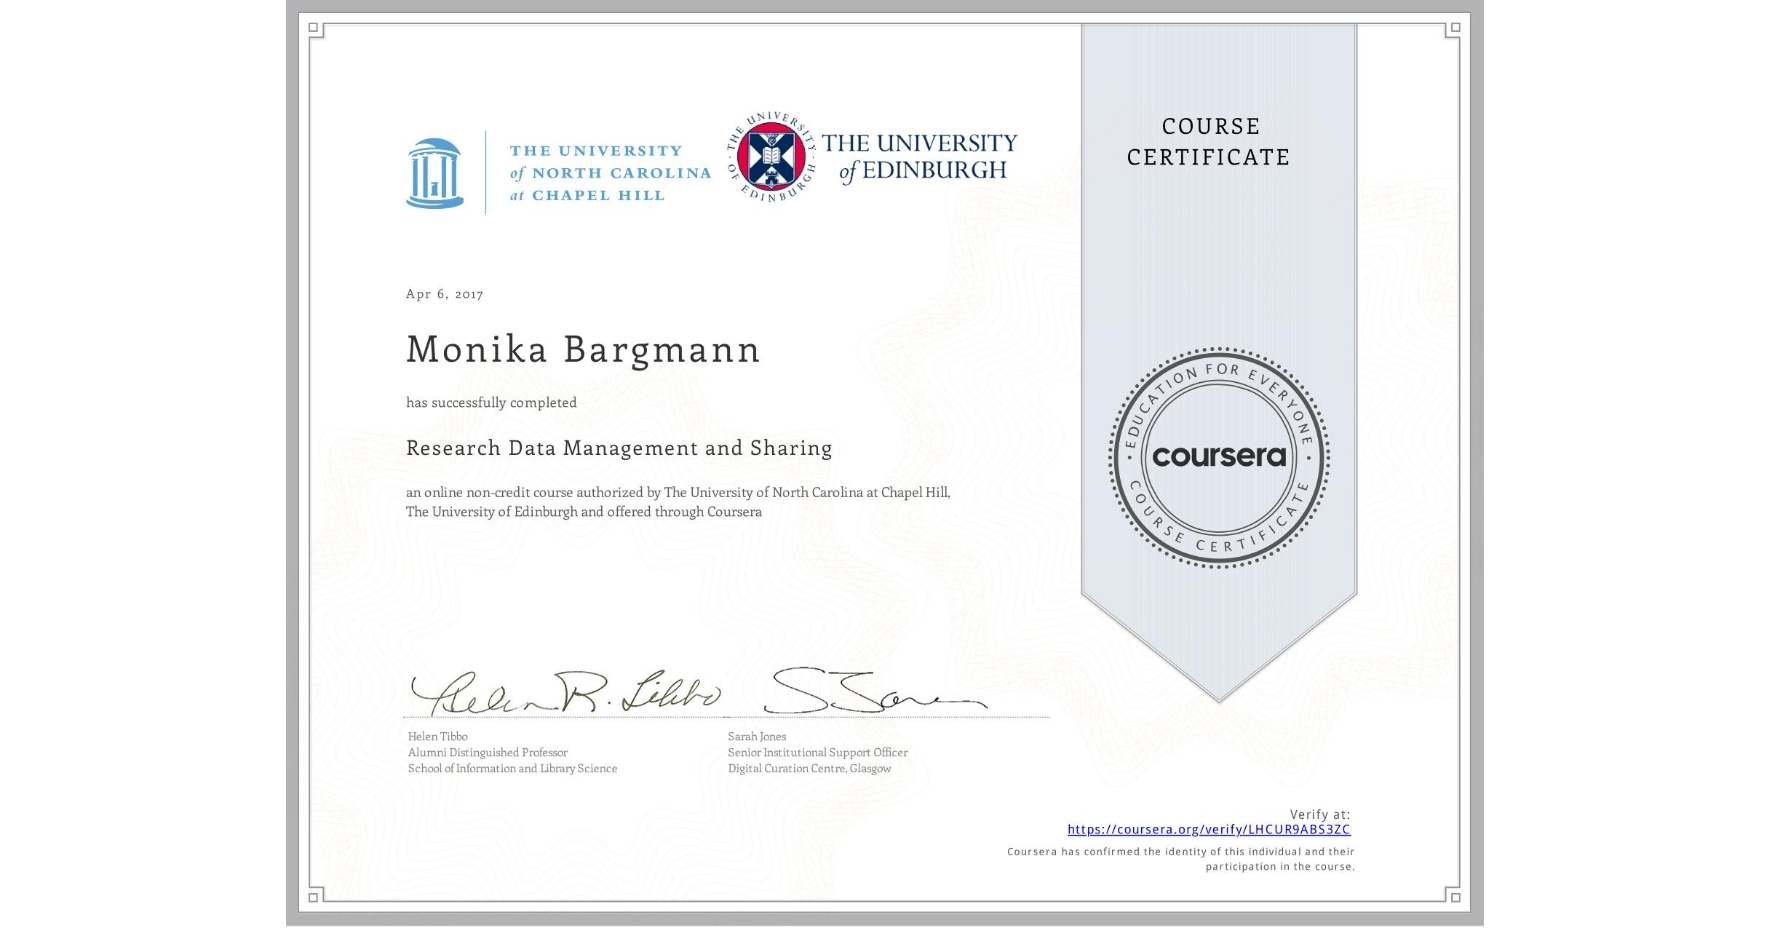 View certificate for Monika Bargmann, Research Data Management and Sharing, an online non-credit course authorized by The University of North Carolina at Chapel Hill & The University of Edinburgh and offered through Coursera